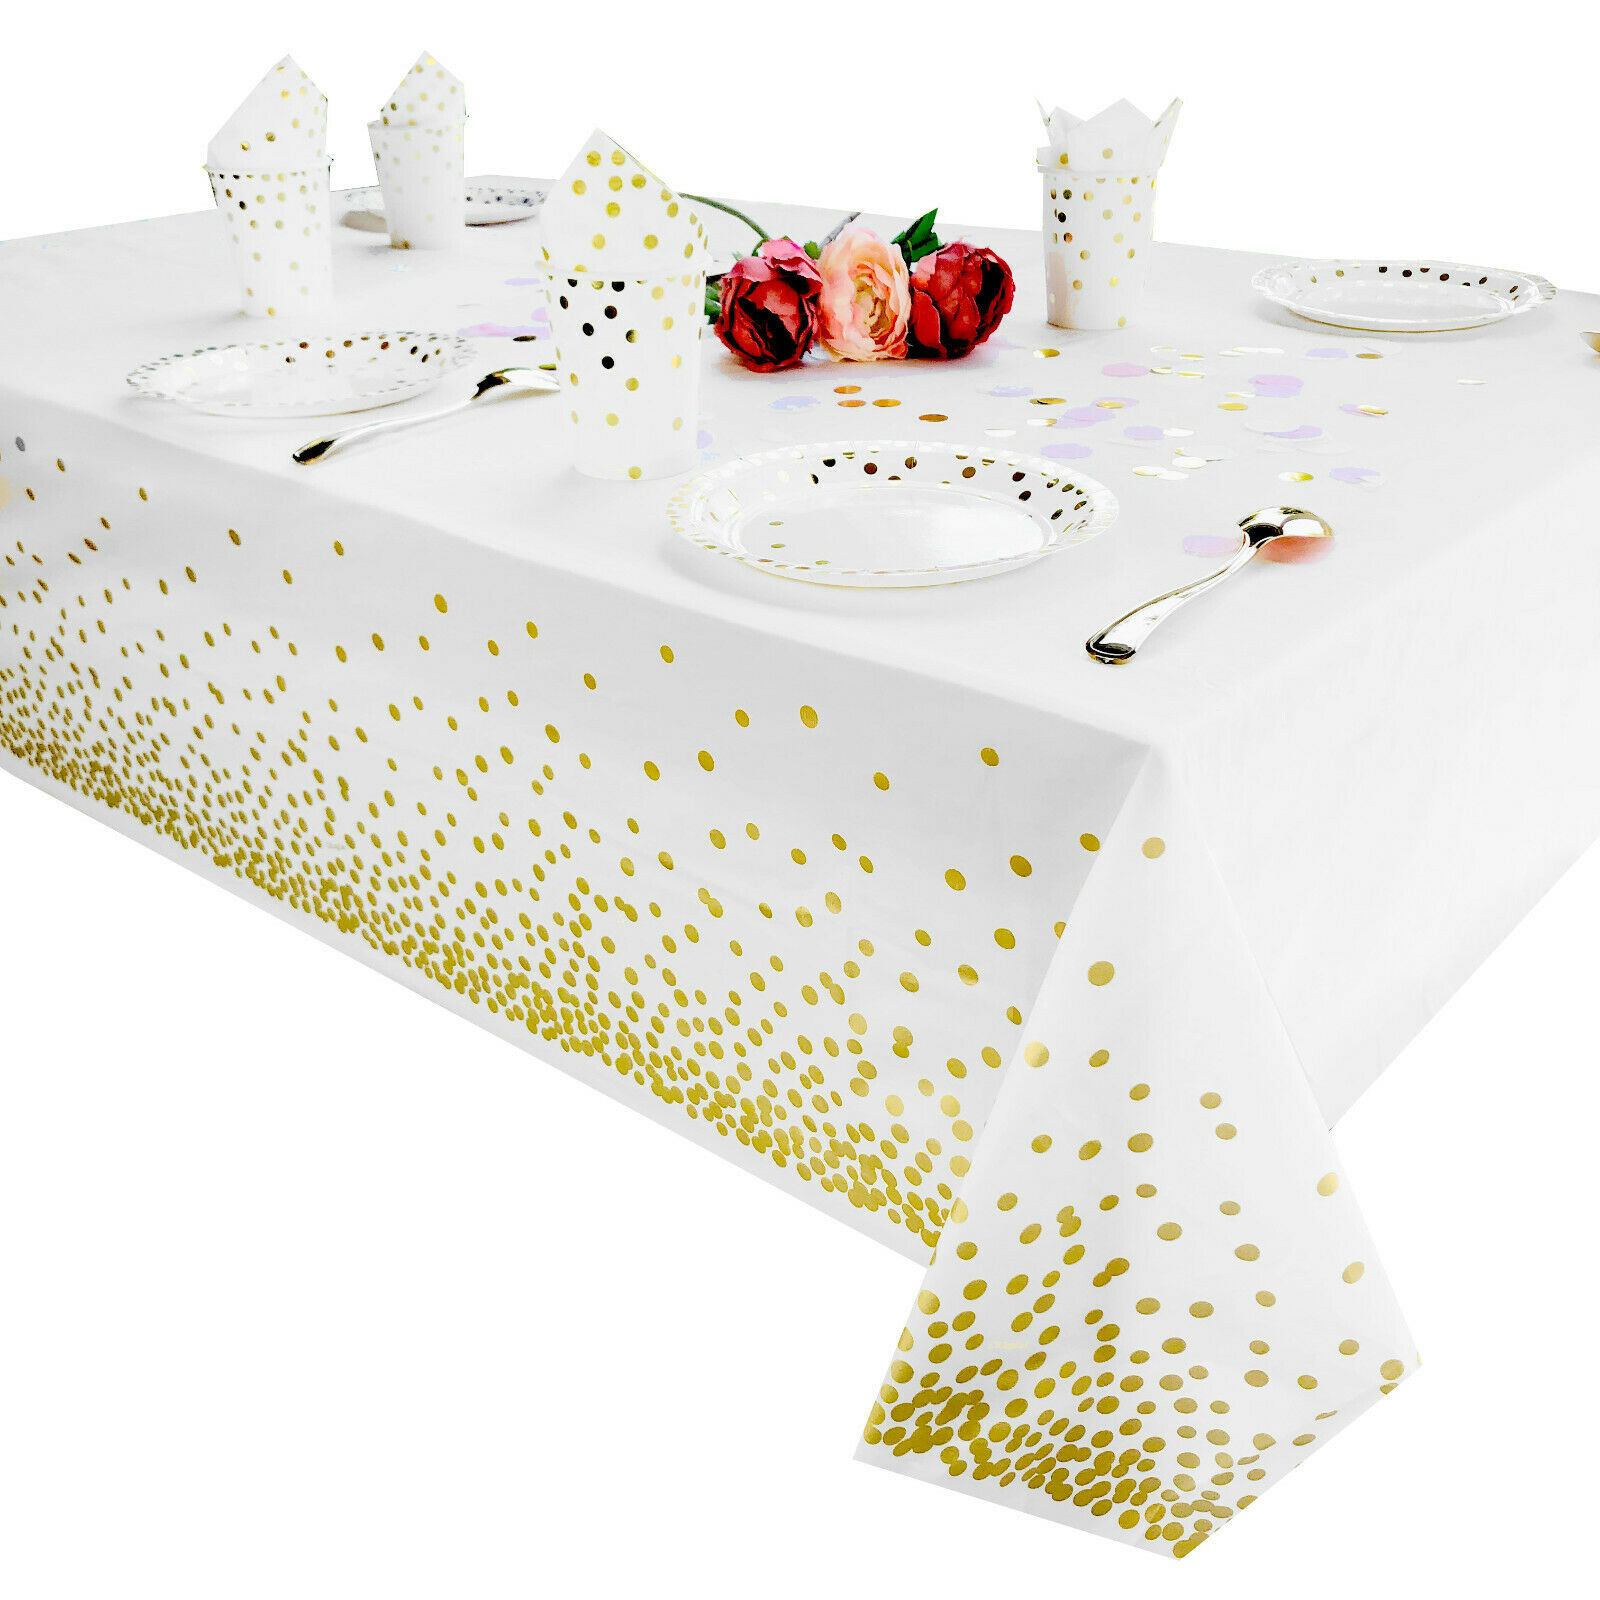 Plastic Tablecloth for parties, Gold, white dot decorations